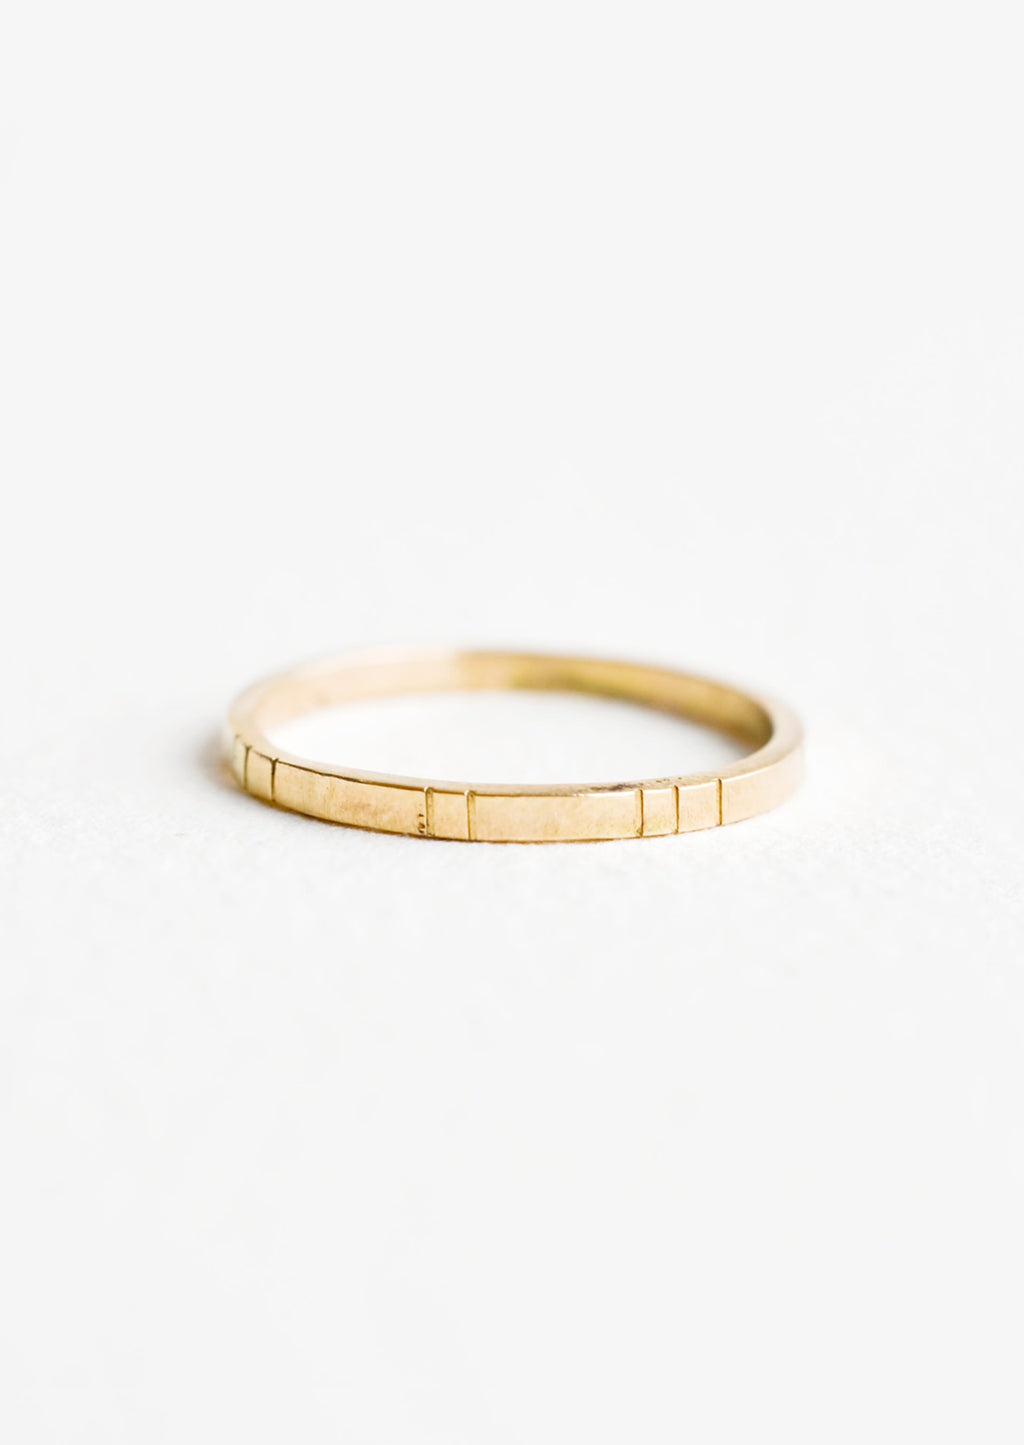 1: Yellow gold ring, medium weight band with etched decorative lines.